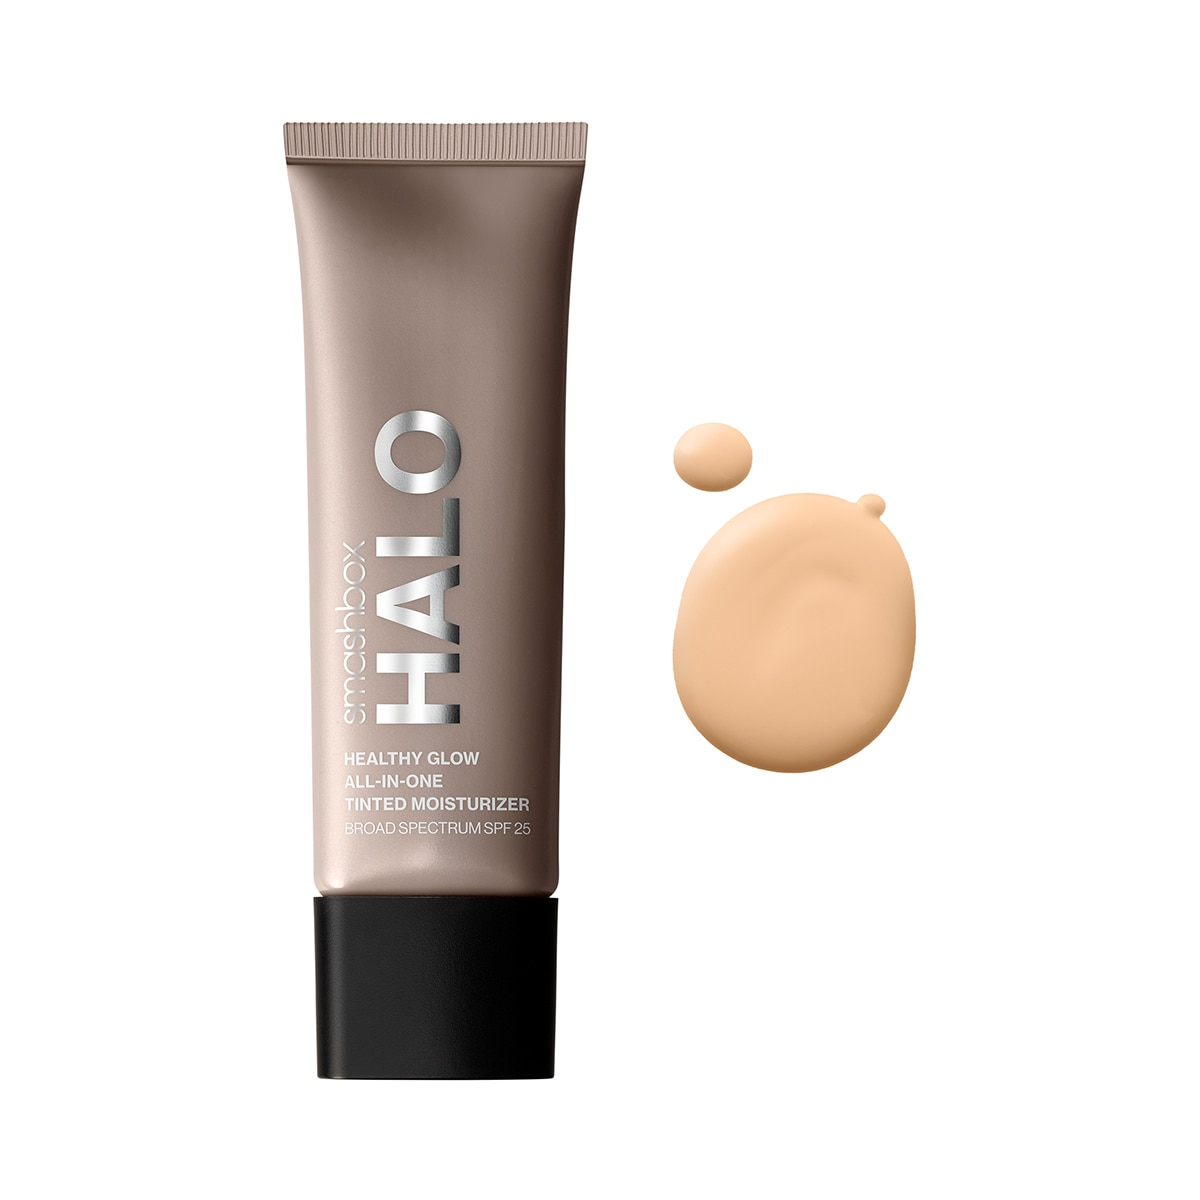 HALO HEALTHY GLOW ALL-IN-ONE TINTED MOISTURIZER SPF 25